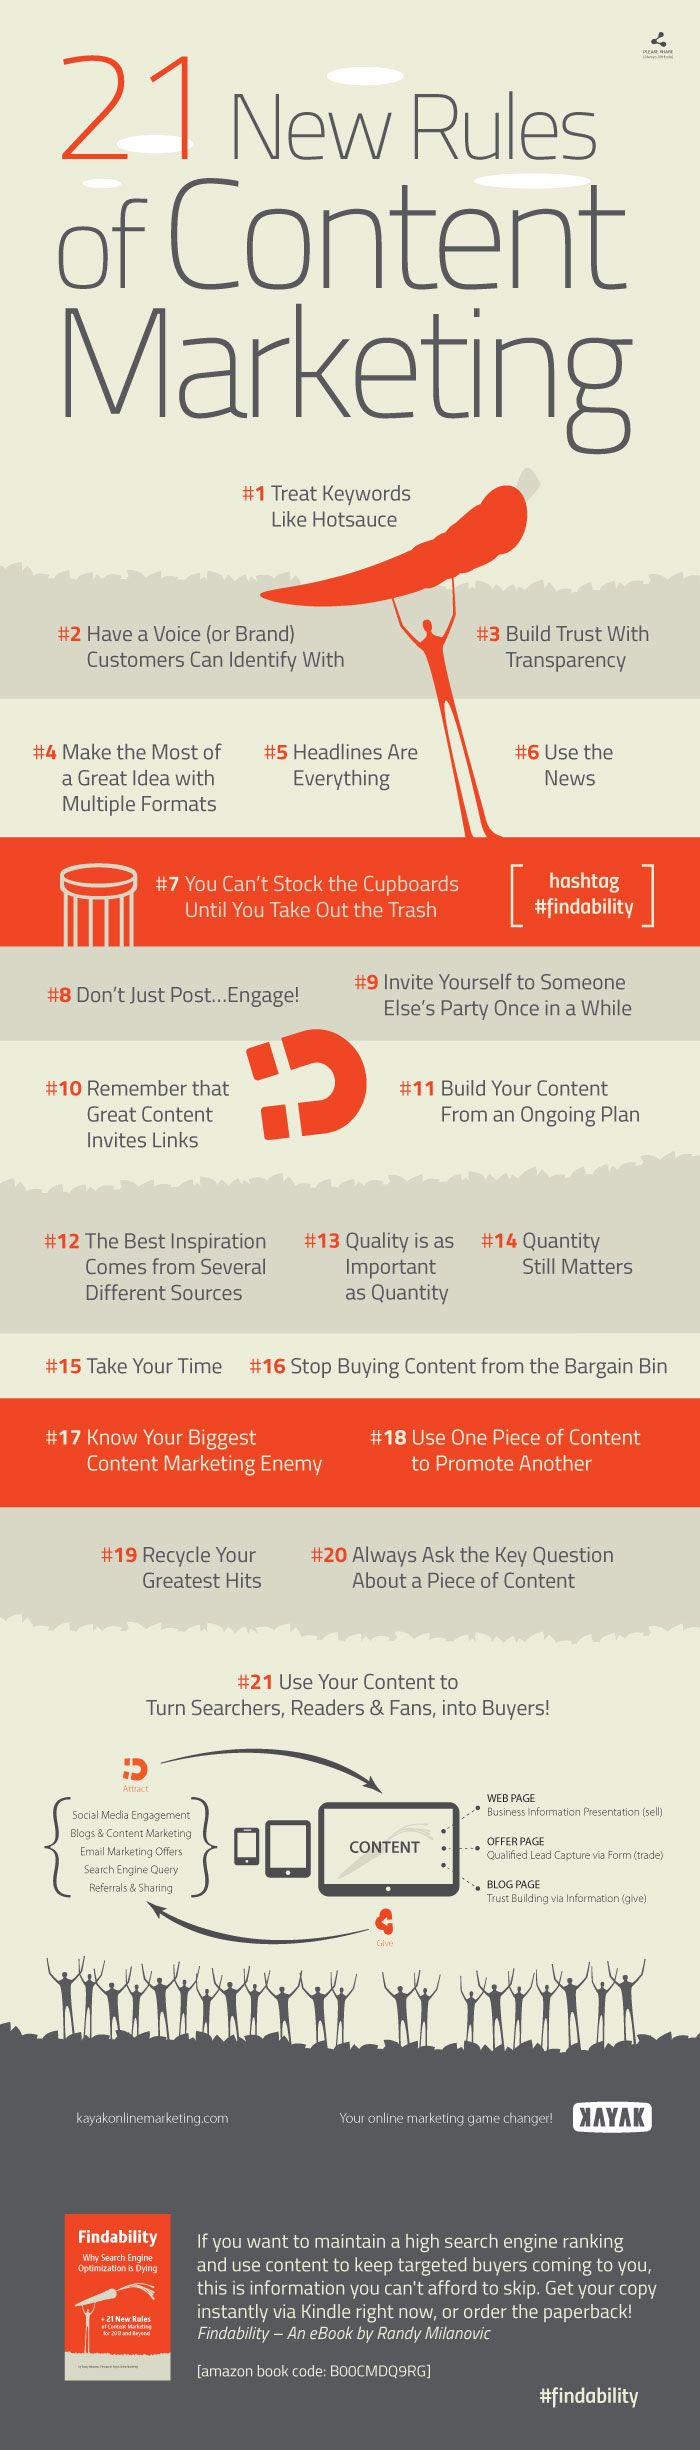 #Infographic: The 21 New Rules of Content Marketing [INFOGRAPHIC]